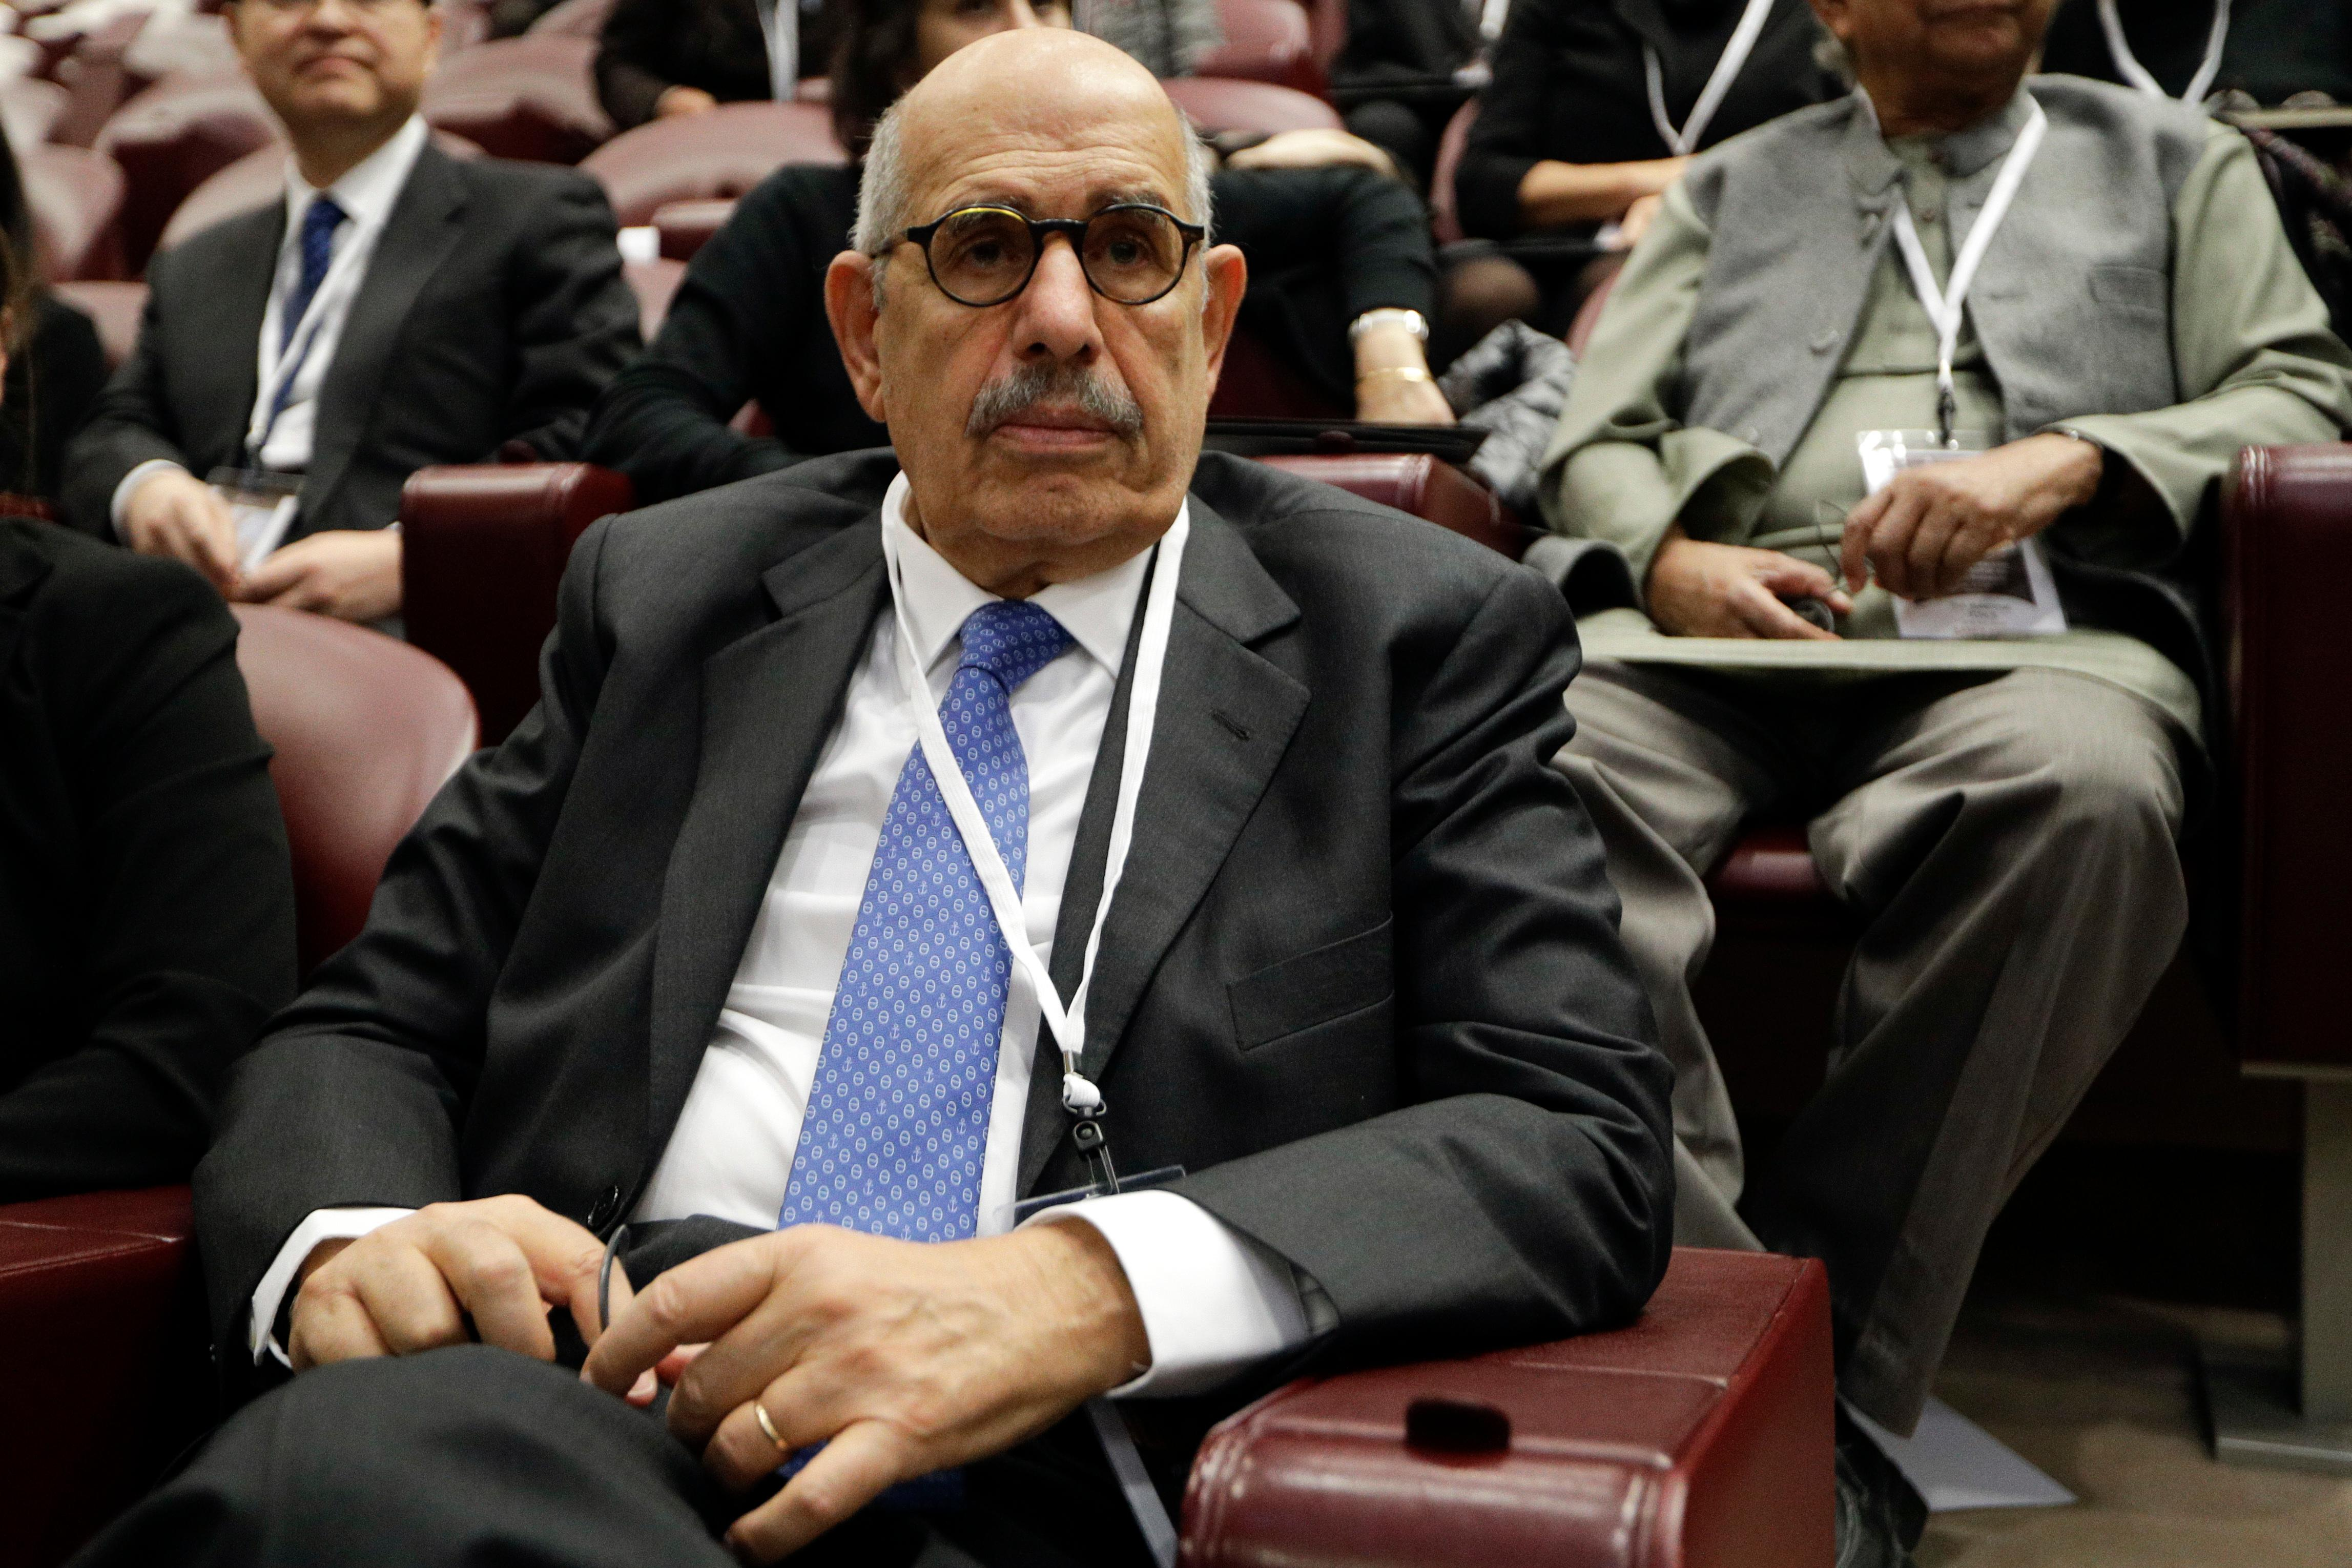 Director General Emeritus of the Intenational atomic Energy Agency and Nobel Peace laureate Mohamed ElBaradei attends a conference on nuclear disarmament, at the Vatican, Friday, Nov. 10, 2017. The Vatican hosted Nobel laureates, U.N. and NATO officials and a handful of nuclear powers at a conference aimed at galvanizing support for a global shift from the Cold War era policy of nuclear deterrence to one of total nuclear disarmament.(AP Photo/Andrew Medichini)